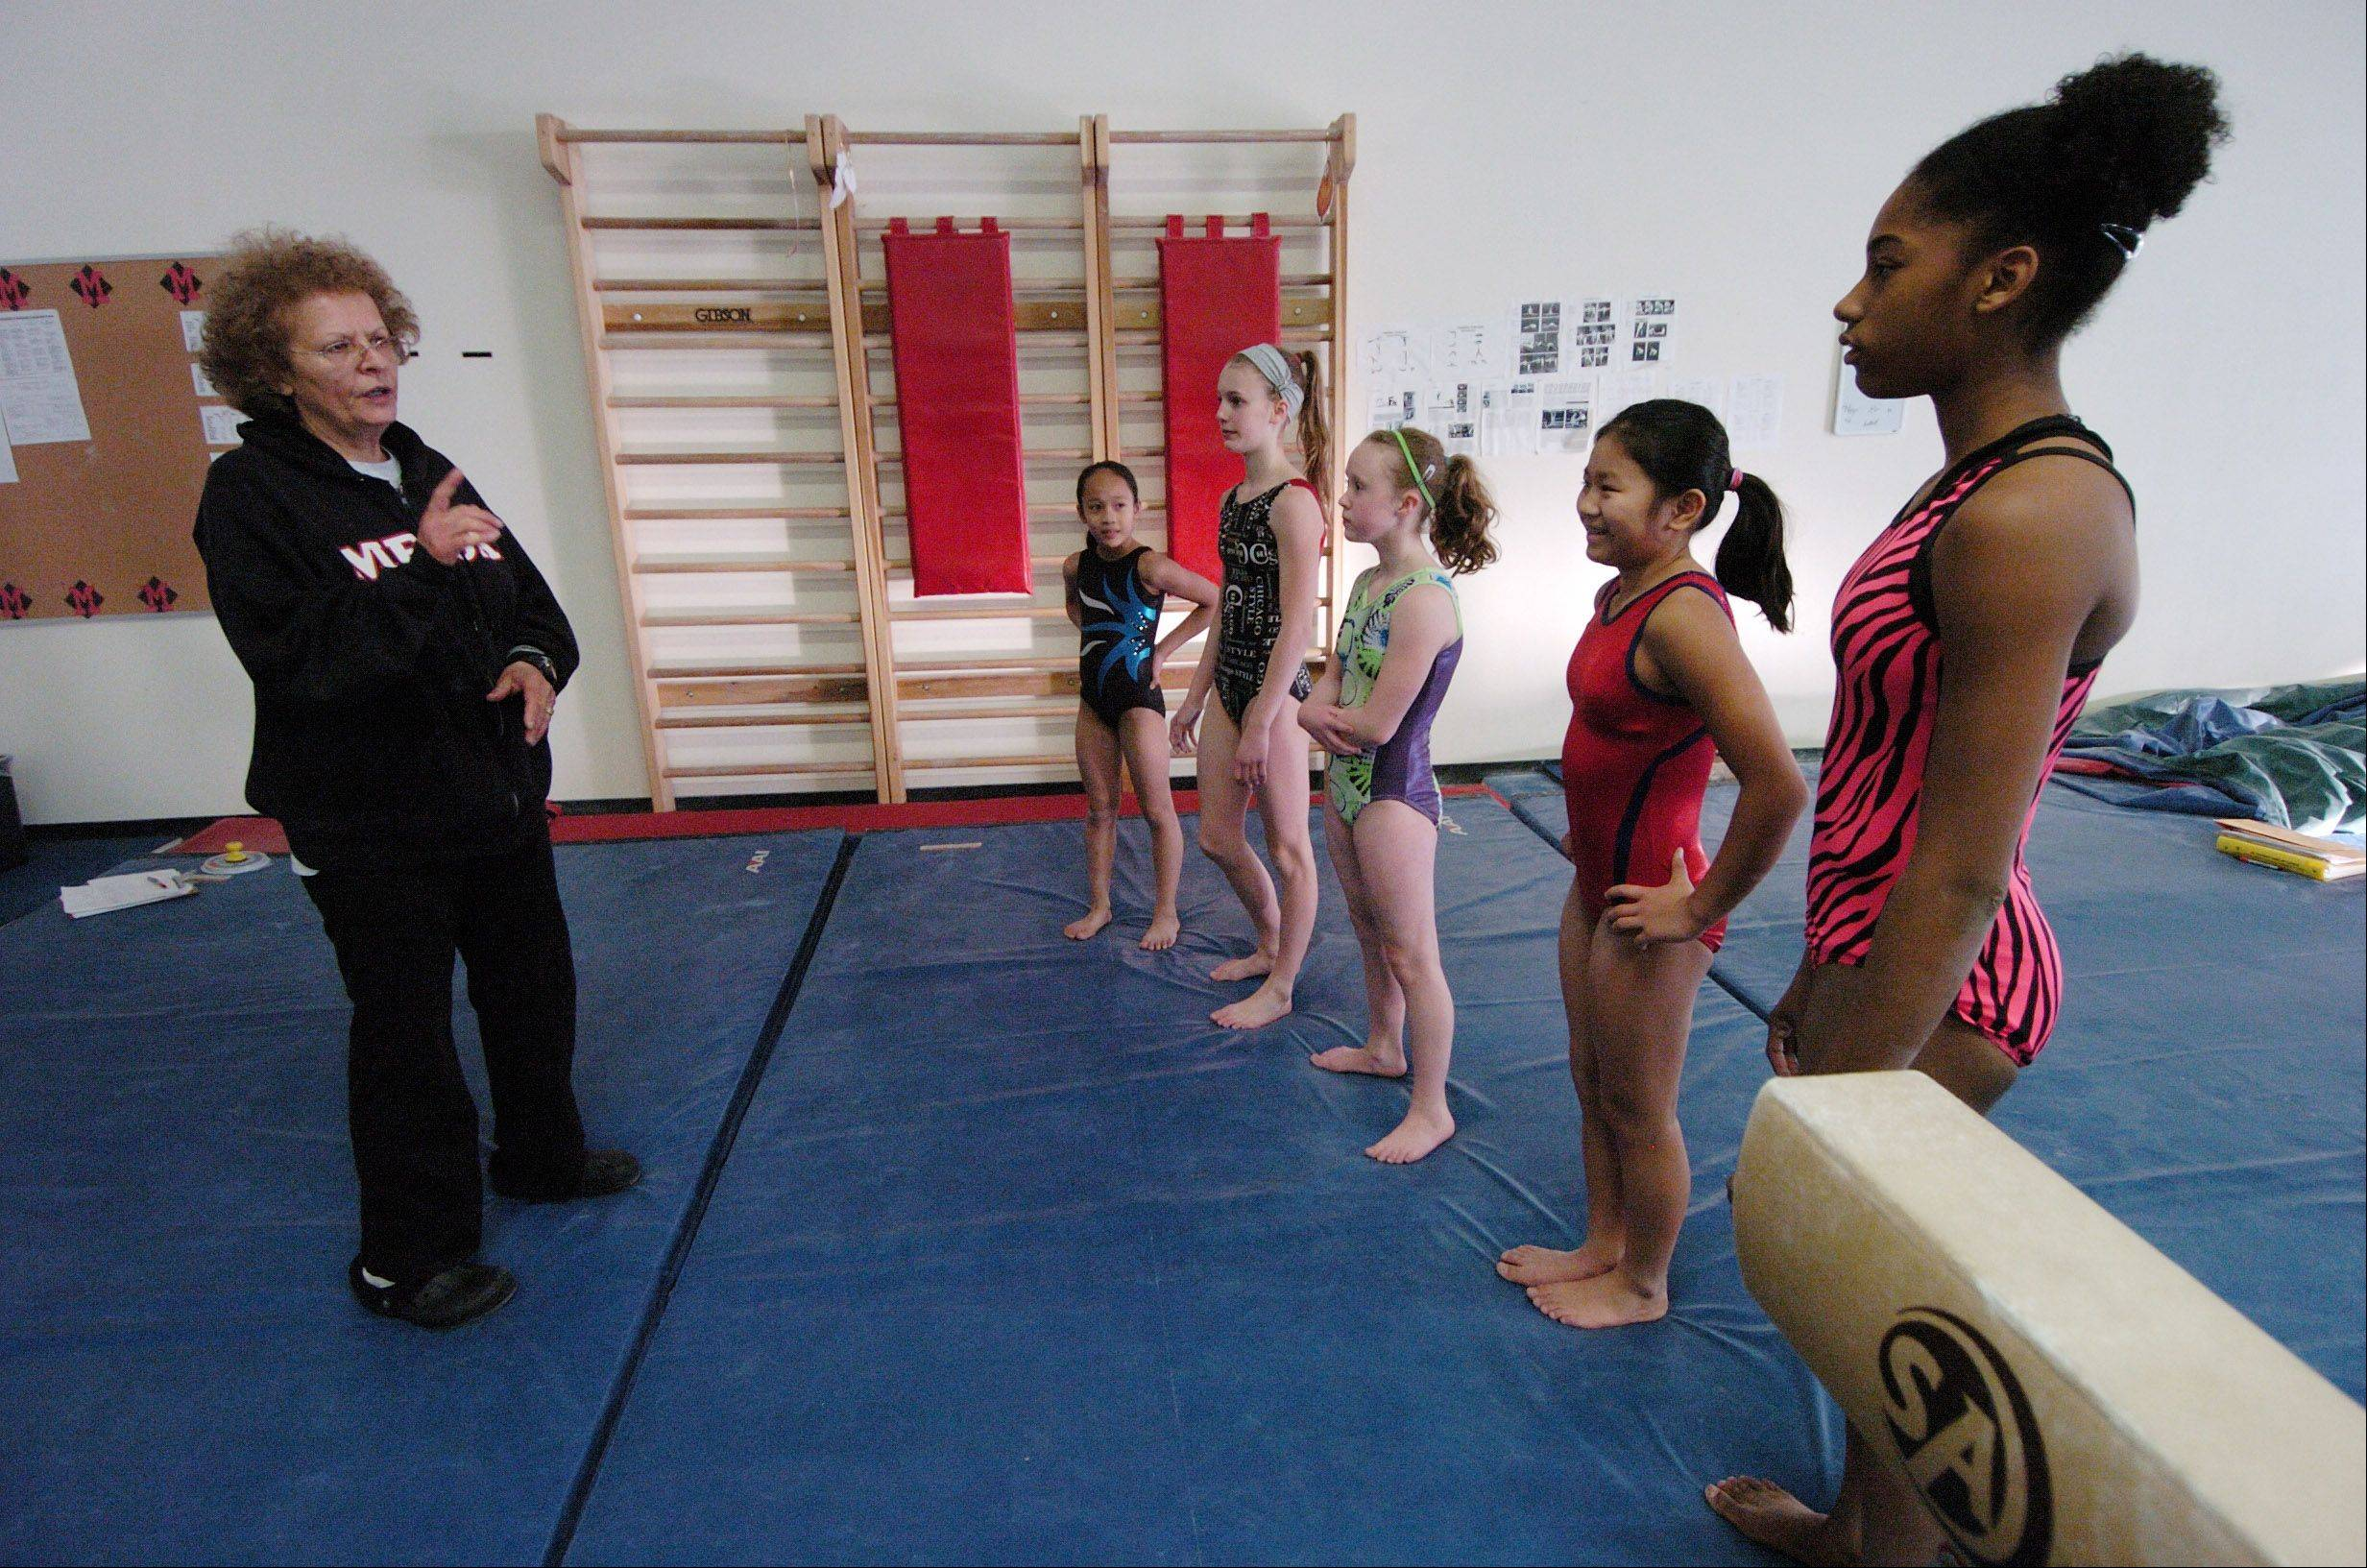 JOE LEWNARD/jlewnard@dailyherald.com Gymnastics coach Ileana Albu works with pupils during a session at Midwest Elite Gymnastics Academy in South Barrington. The academy will be moving to Elgin in January.